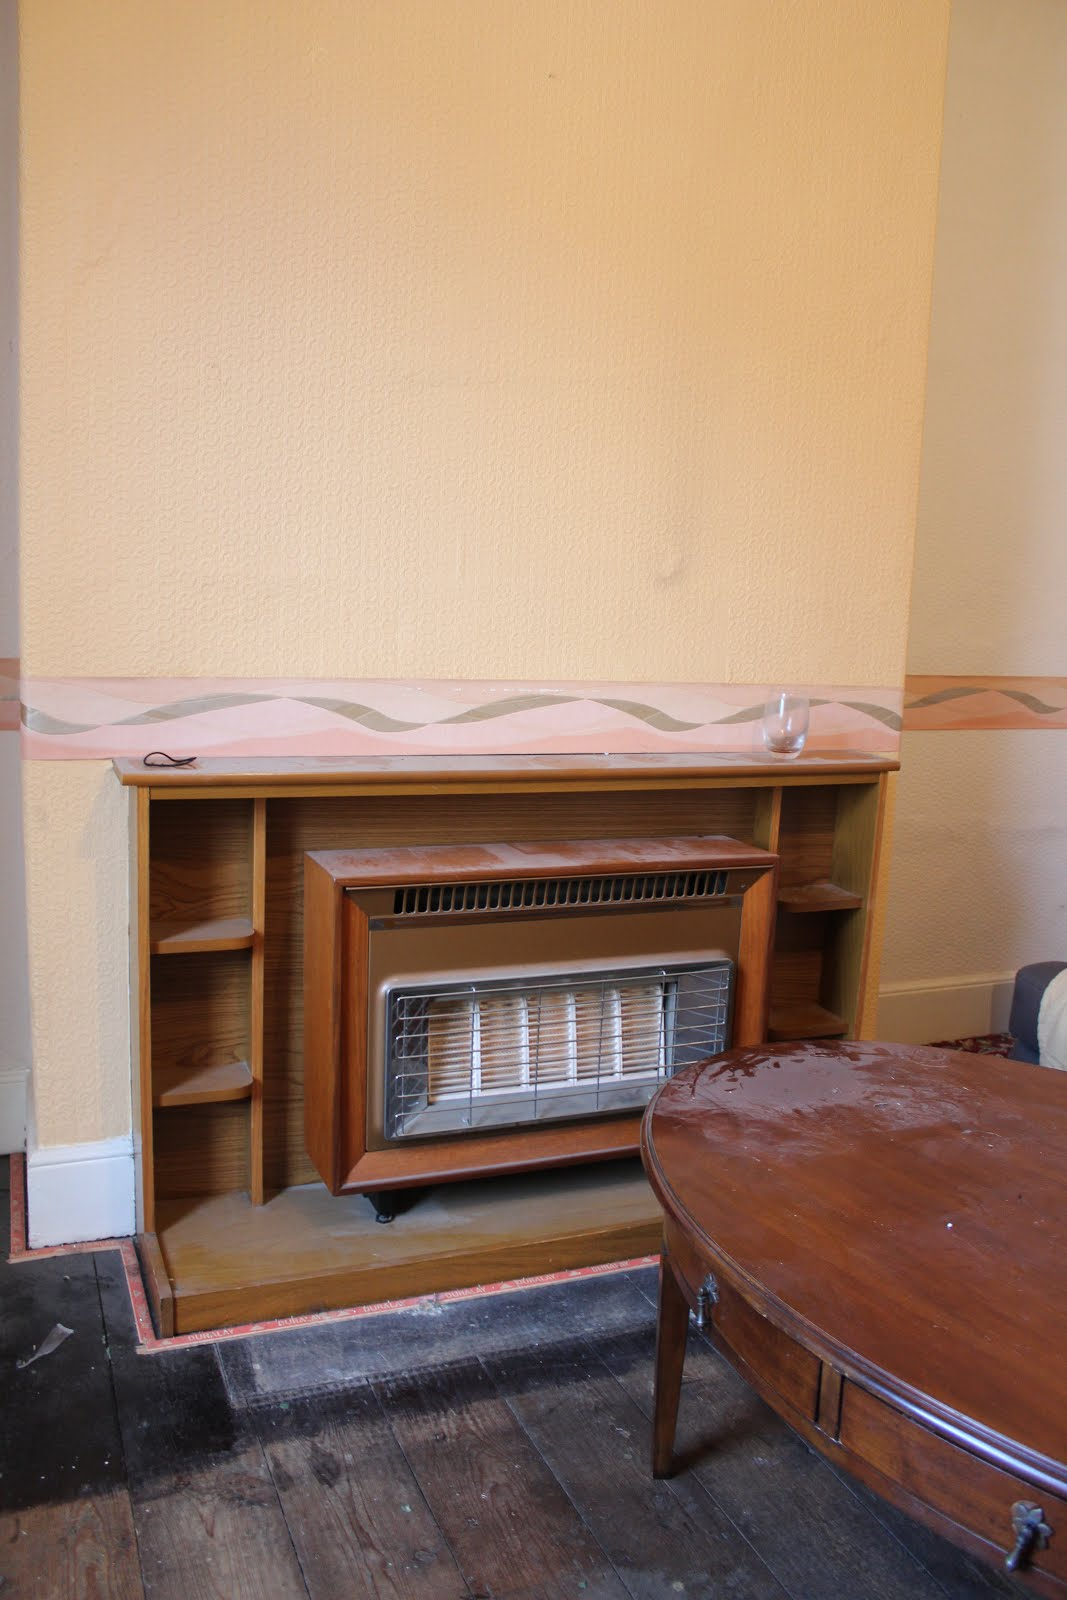 Retro Fireplace in Living Room